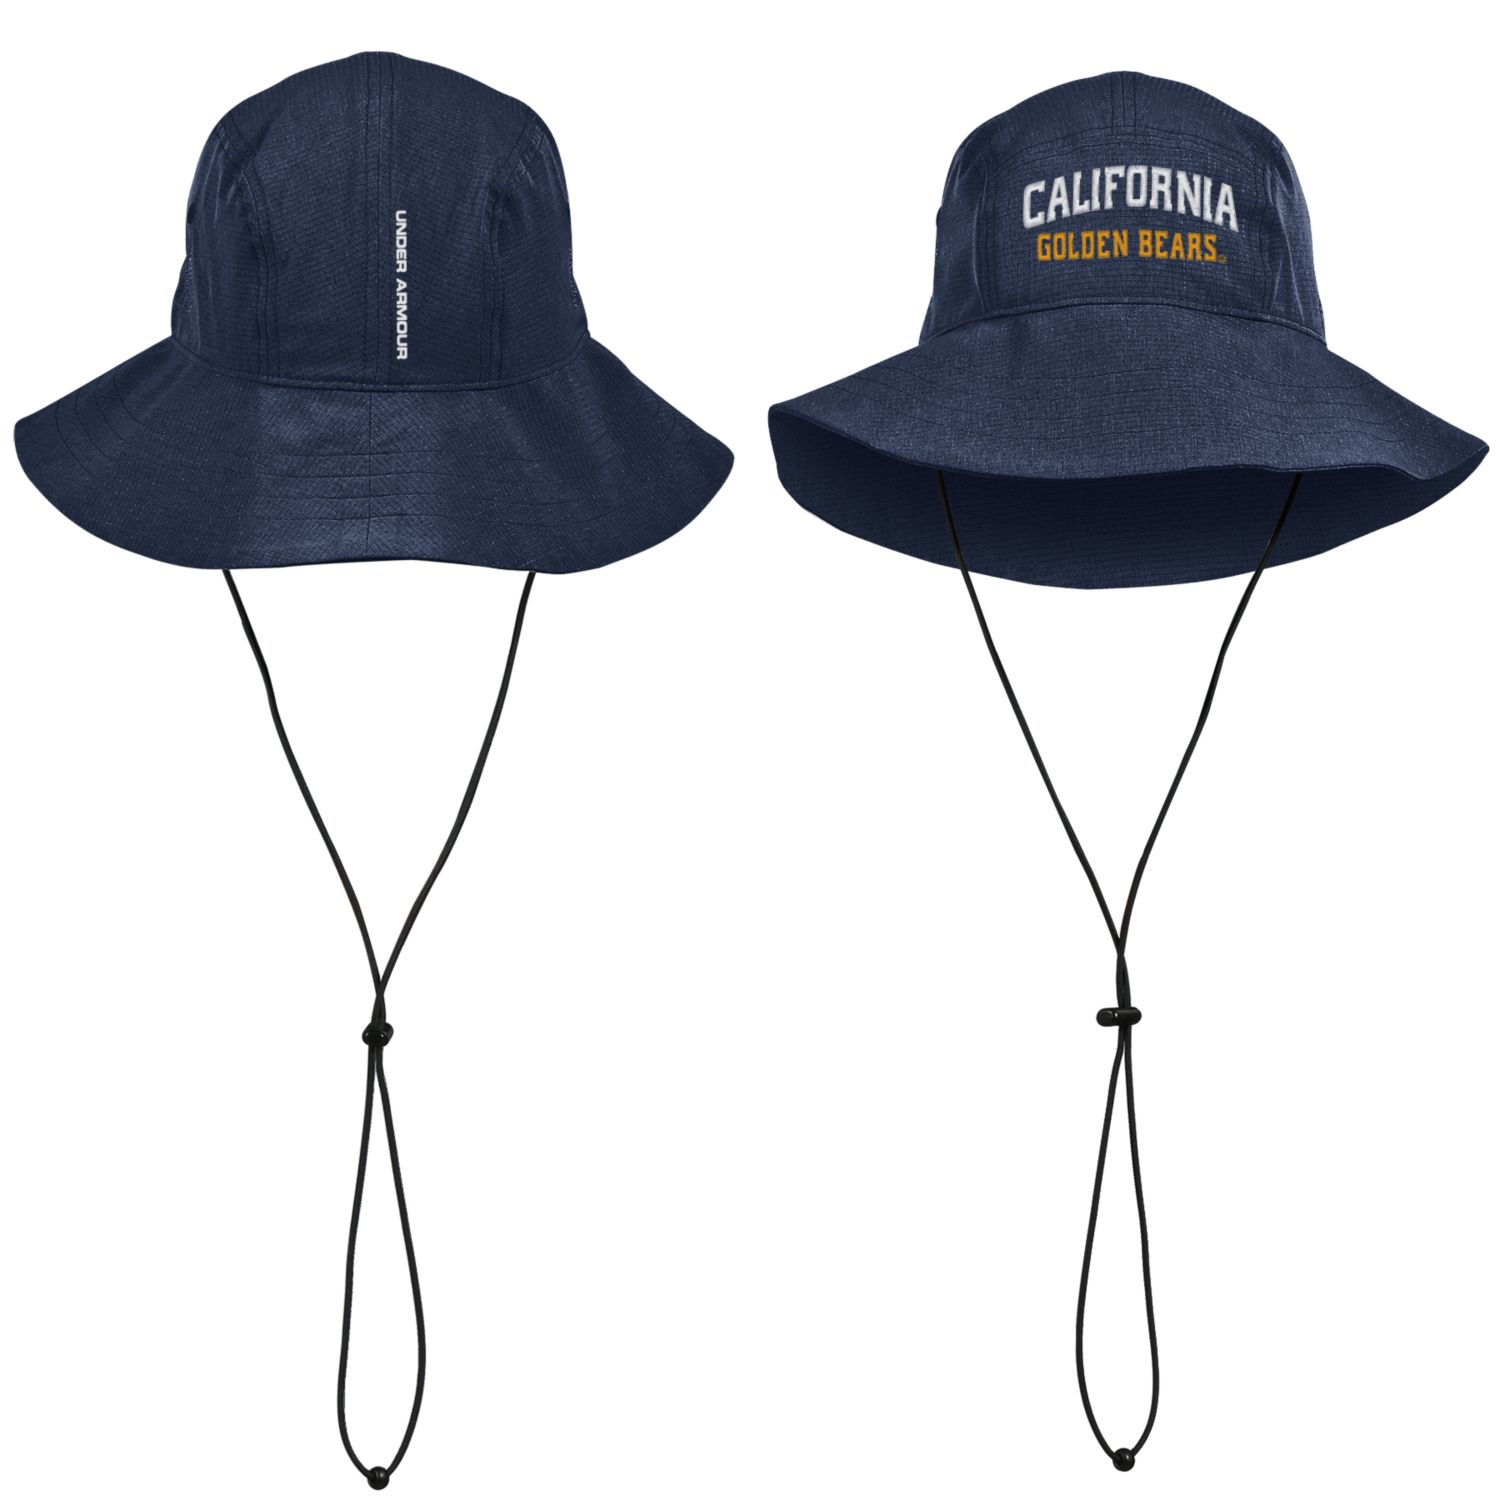 University of California Berkeley Under Armour Men's Airvent Warrior Bucket Hat